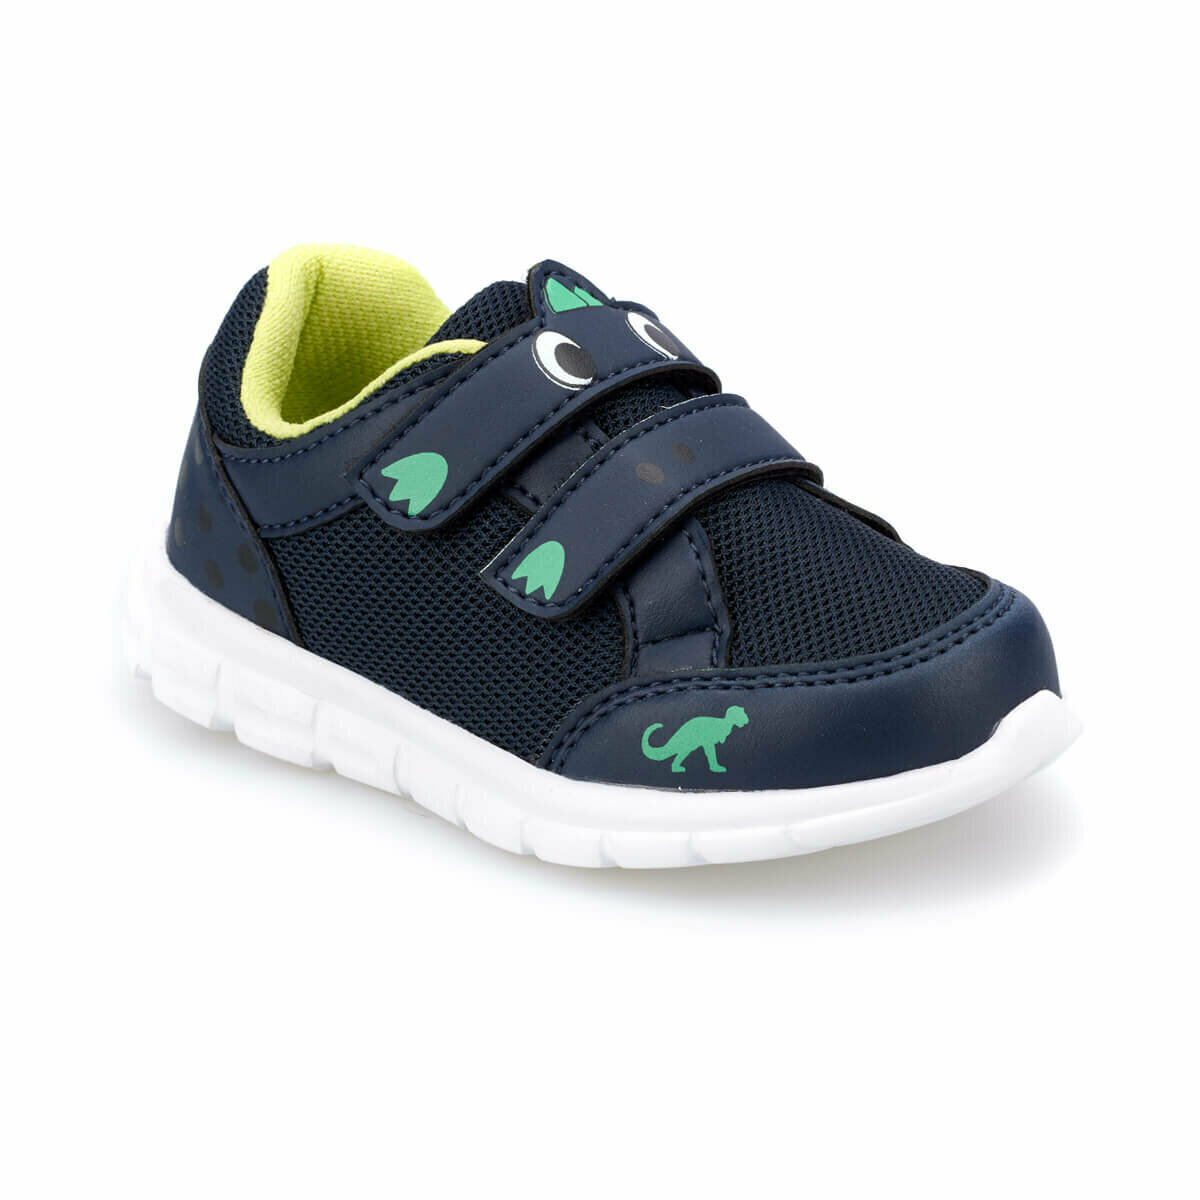 FLO BUFFY Navy Blue Male Child Sneaker Shoes KINETIX